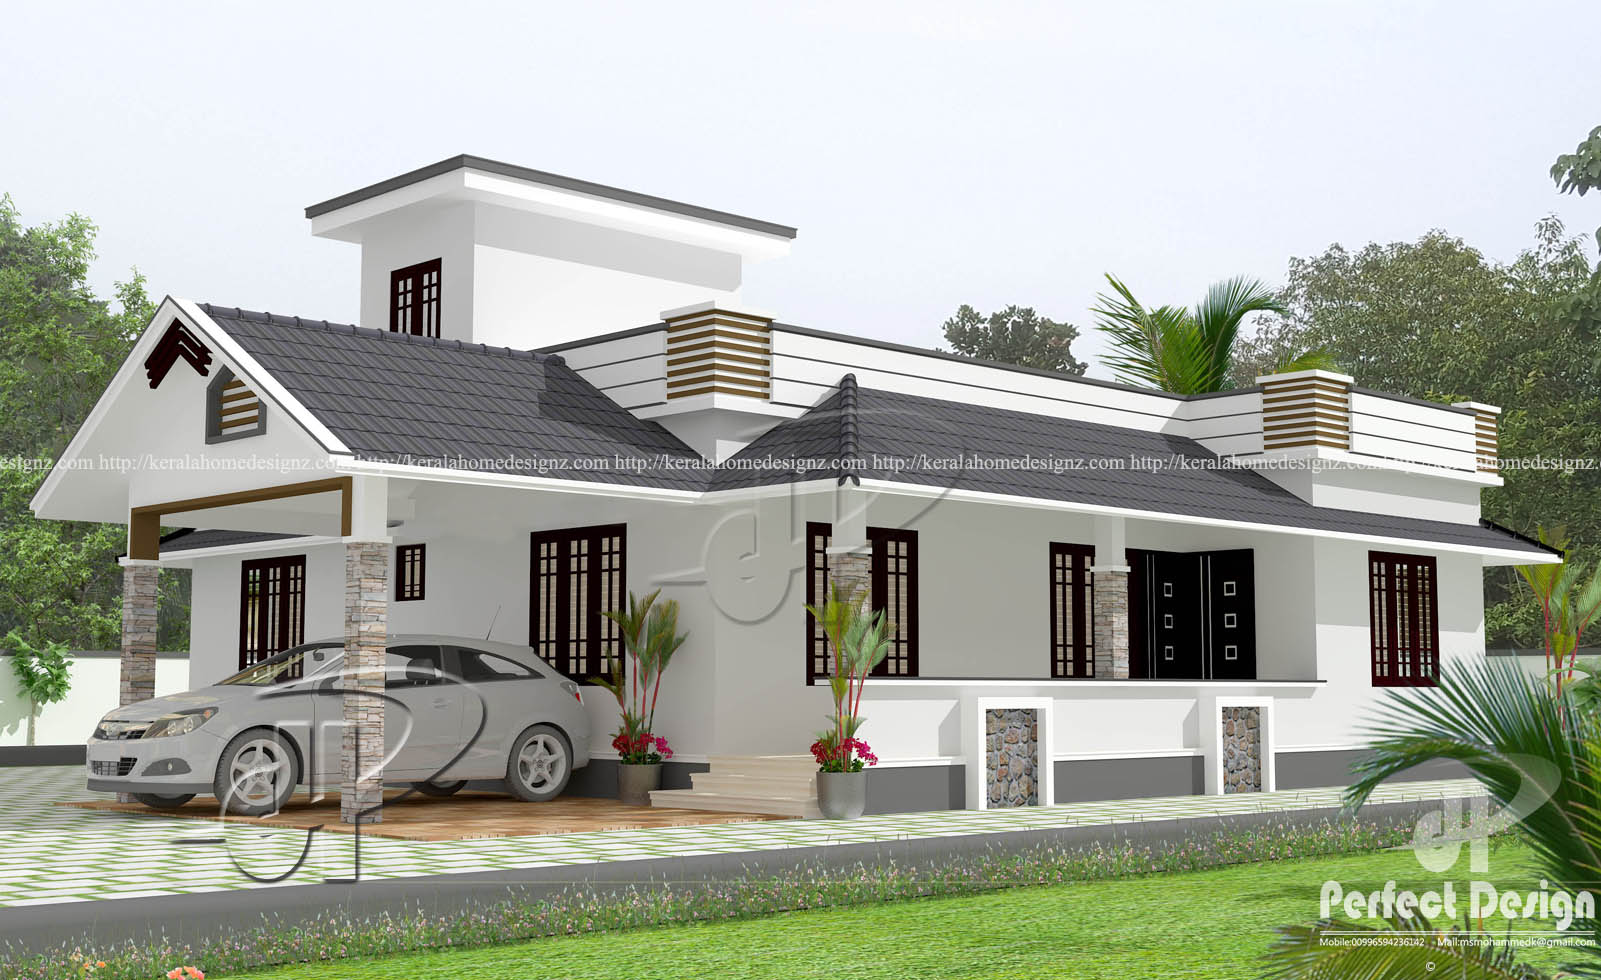 1181 SQFT KERALA HOME DESIGNS Kerala Home Design